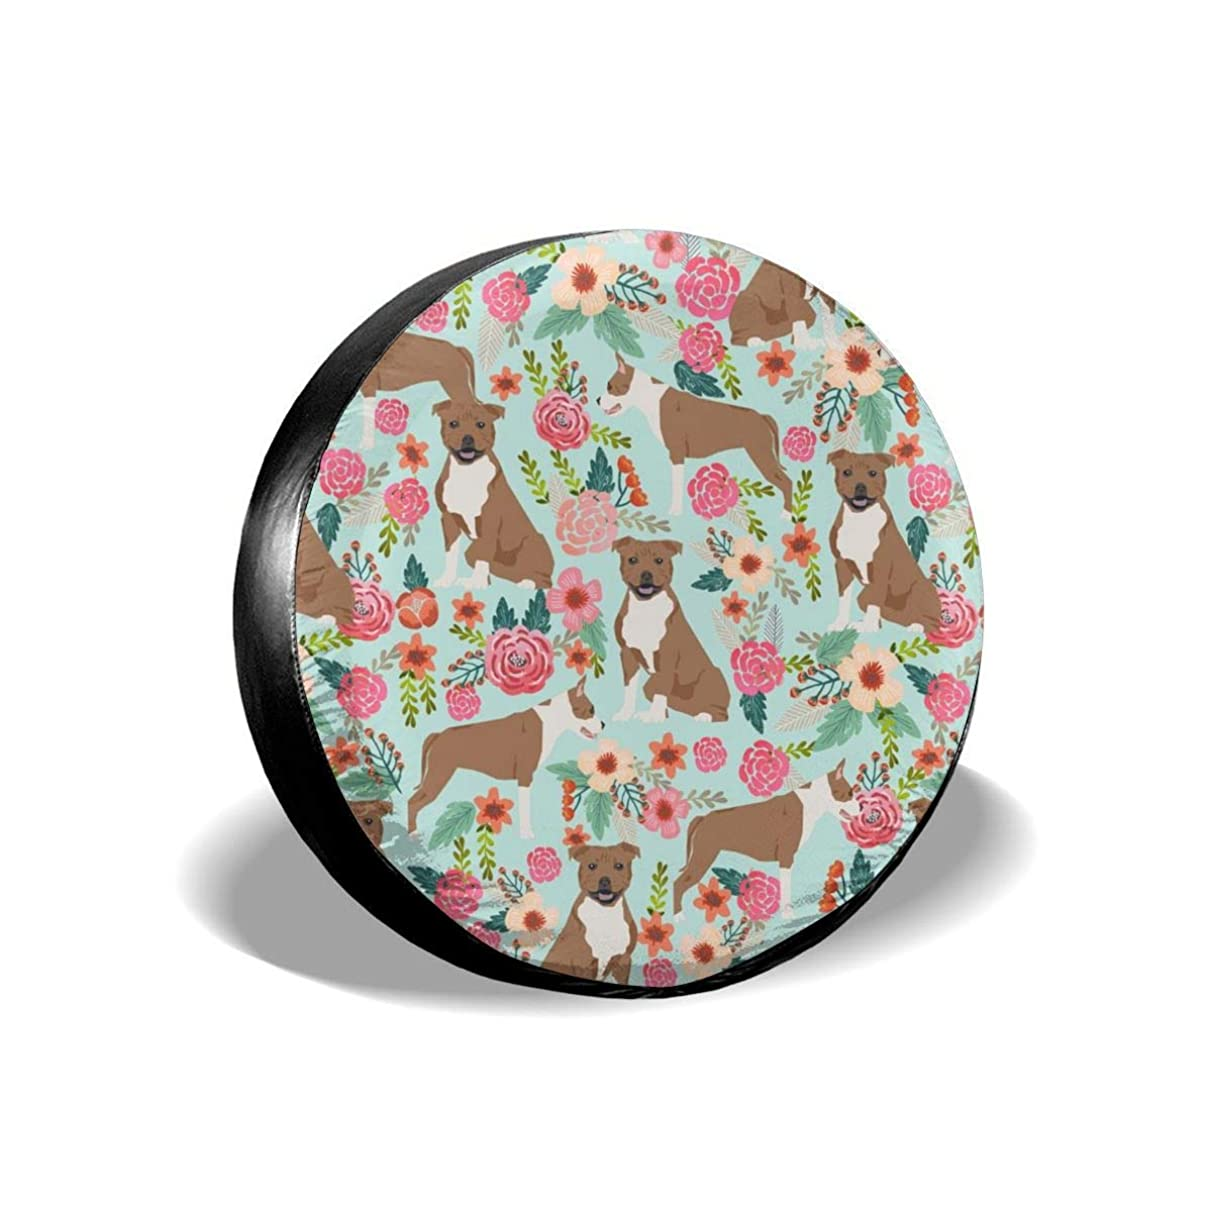 staffordshire terrier dog cute florals vintage flowers floral pet pets sweet smiling dogs Polyester Universal Spare Wheel Tire Cover Wheel Covers Jeep Trailer RV SUV Truck Camper Travel Trailer Access